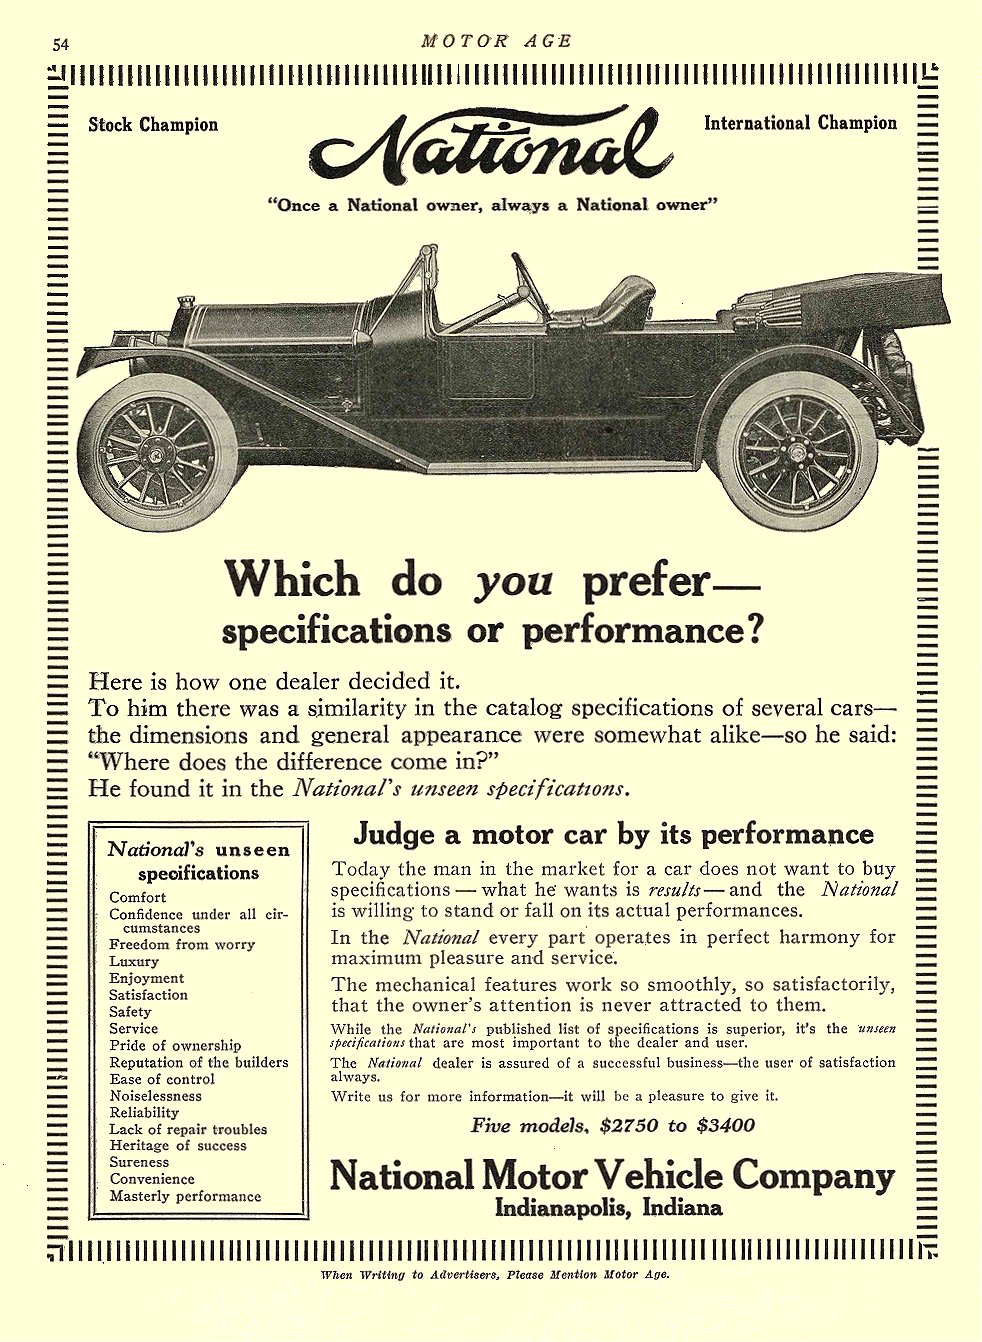 1913 5 29 NATIONAL Which do you prefer— Specifications or performance? National Motor Vehicle Co. Indianapolis, Indiana MOTOR AGE May 29, 1913 8.5″x11.5″ University of Minnesota Library page 54